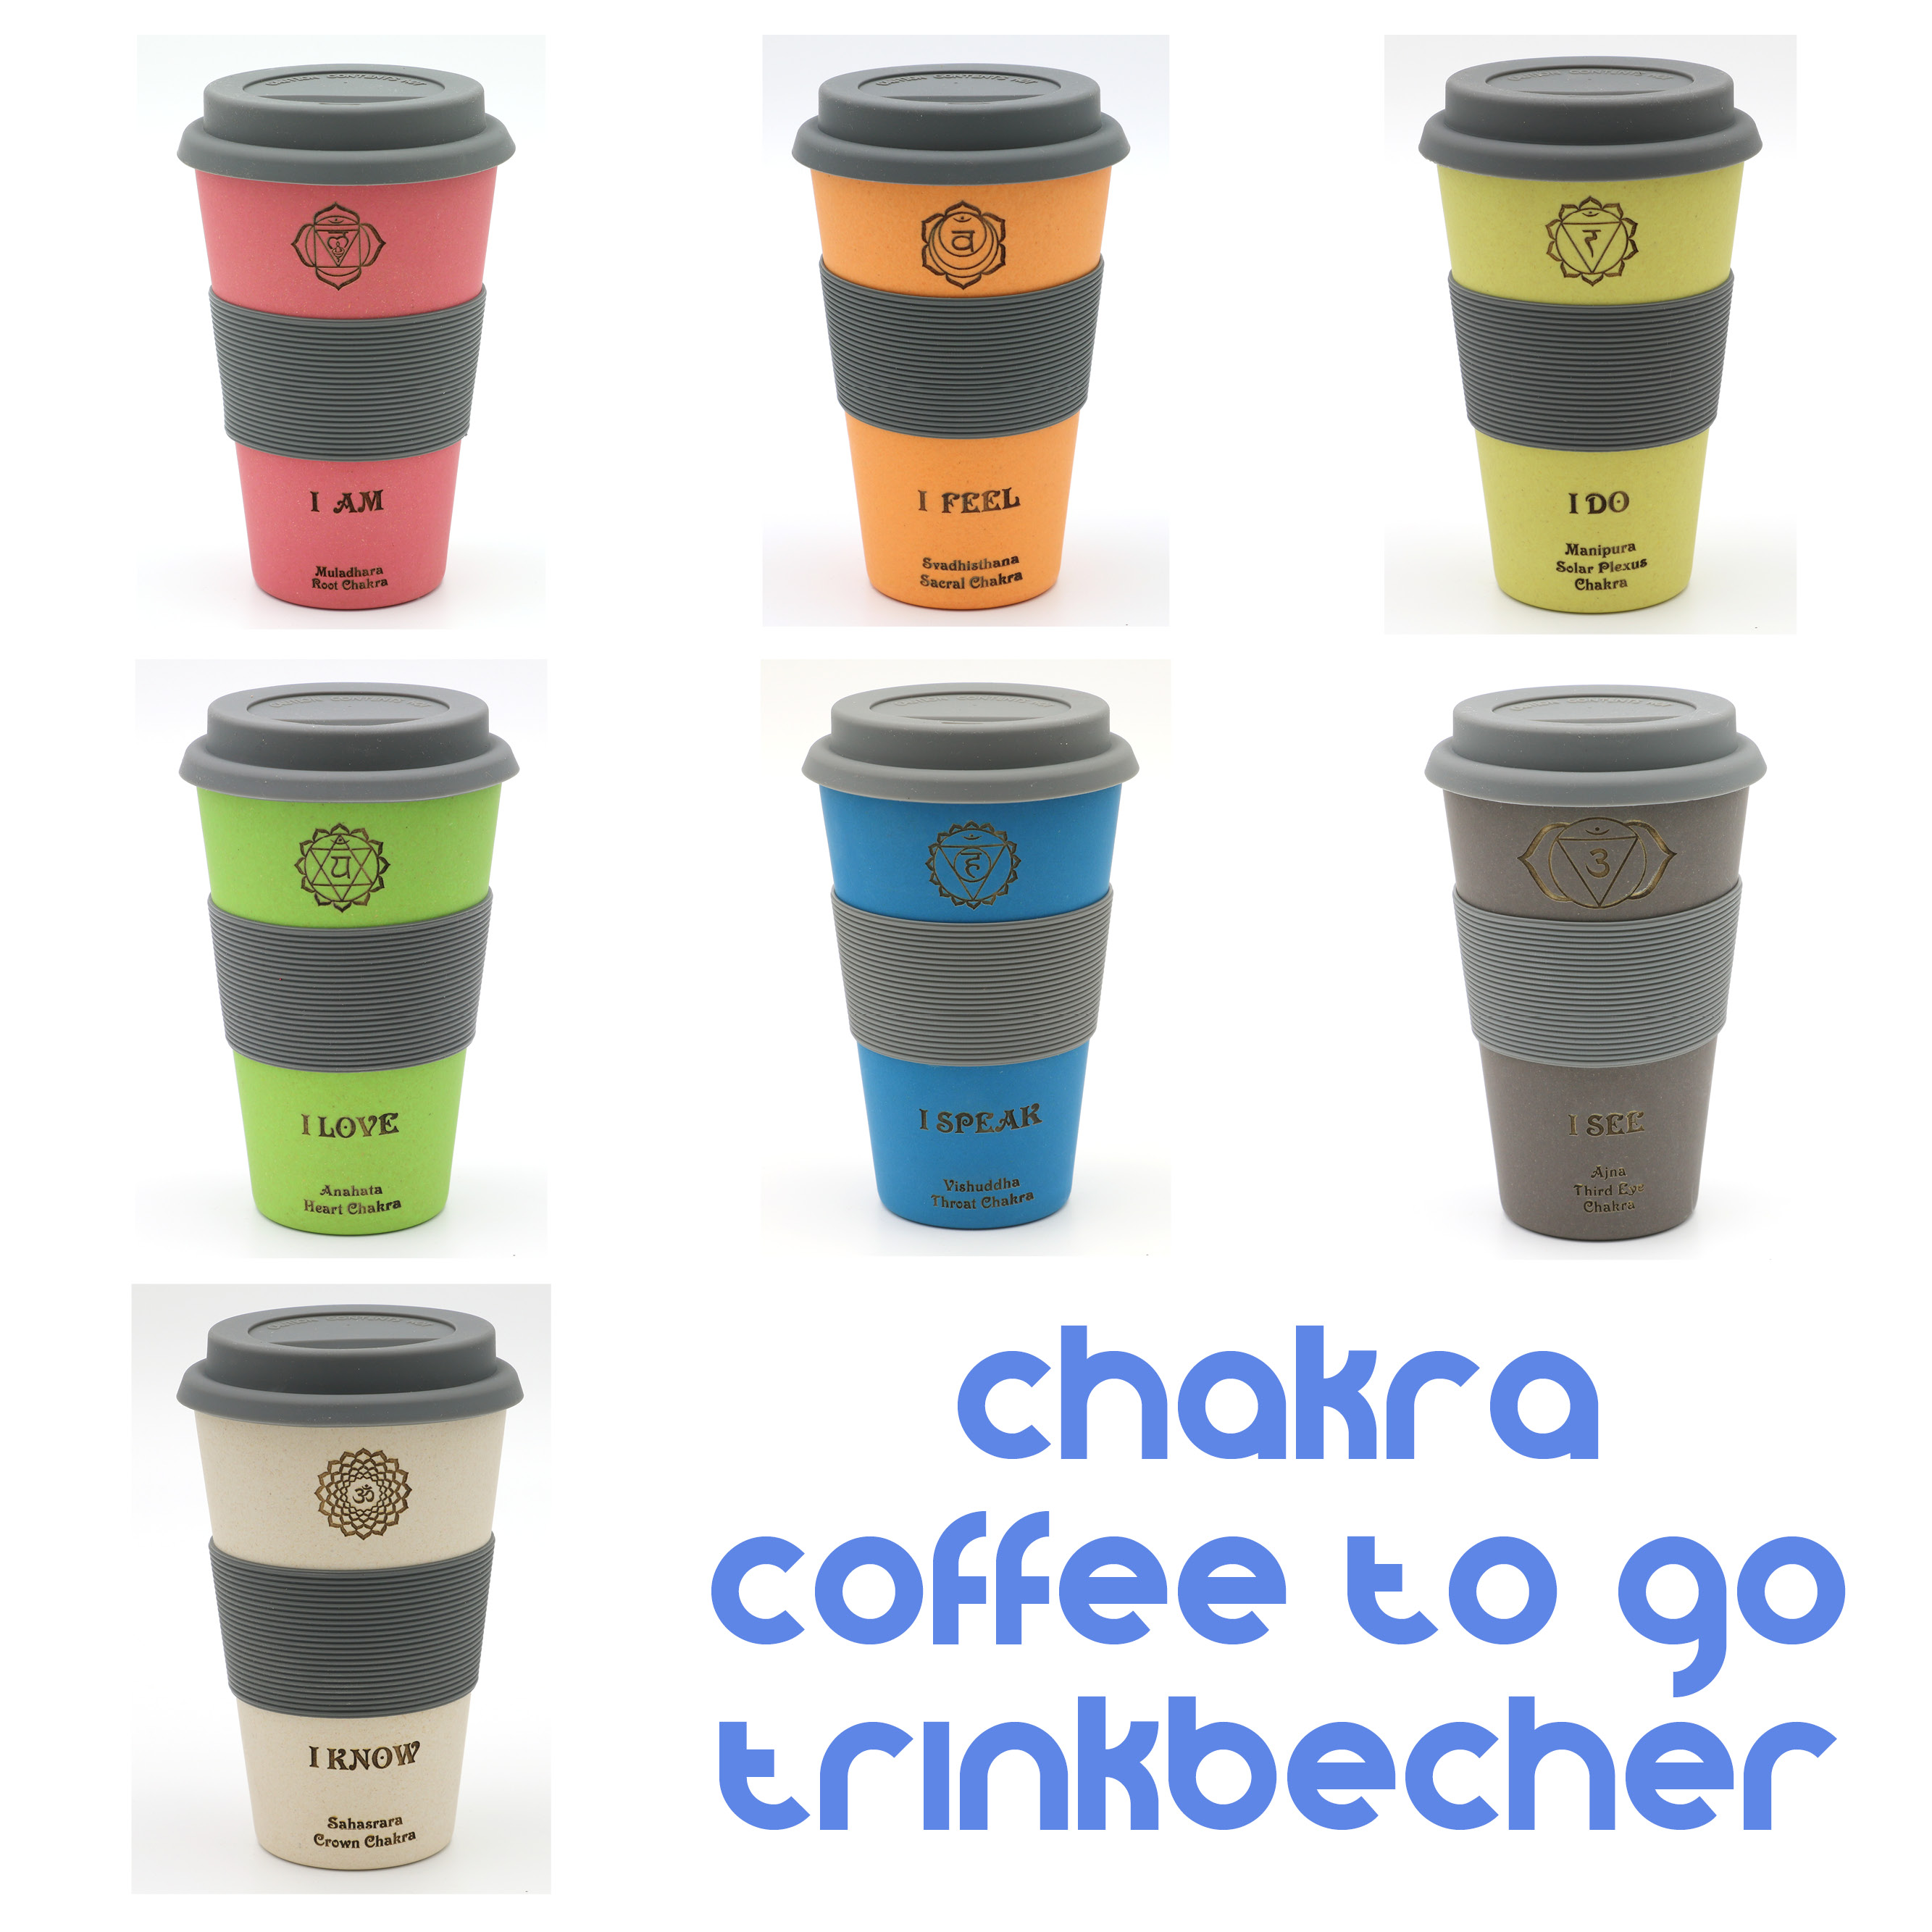 chakra coffee2go becher chakren kollektion bambus geschirr online shop. Black Bedroom Furniture Sets. Home Design Ideas